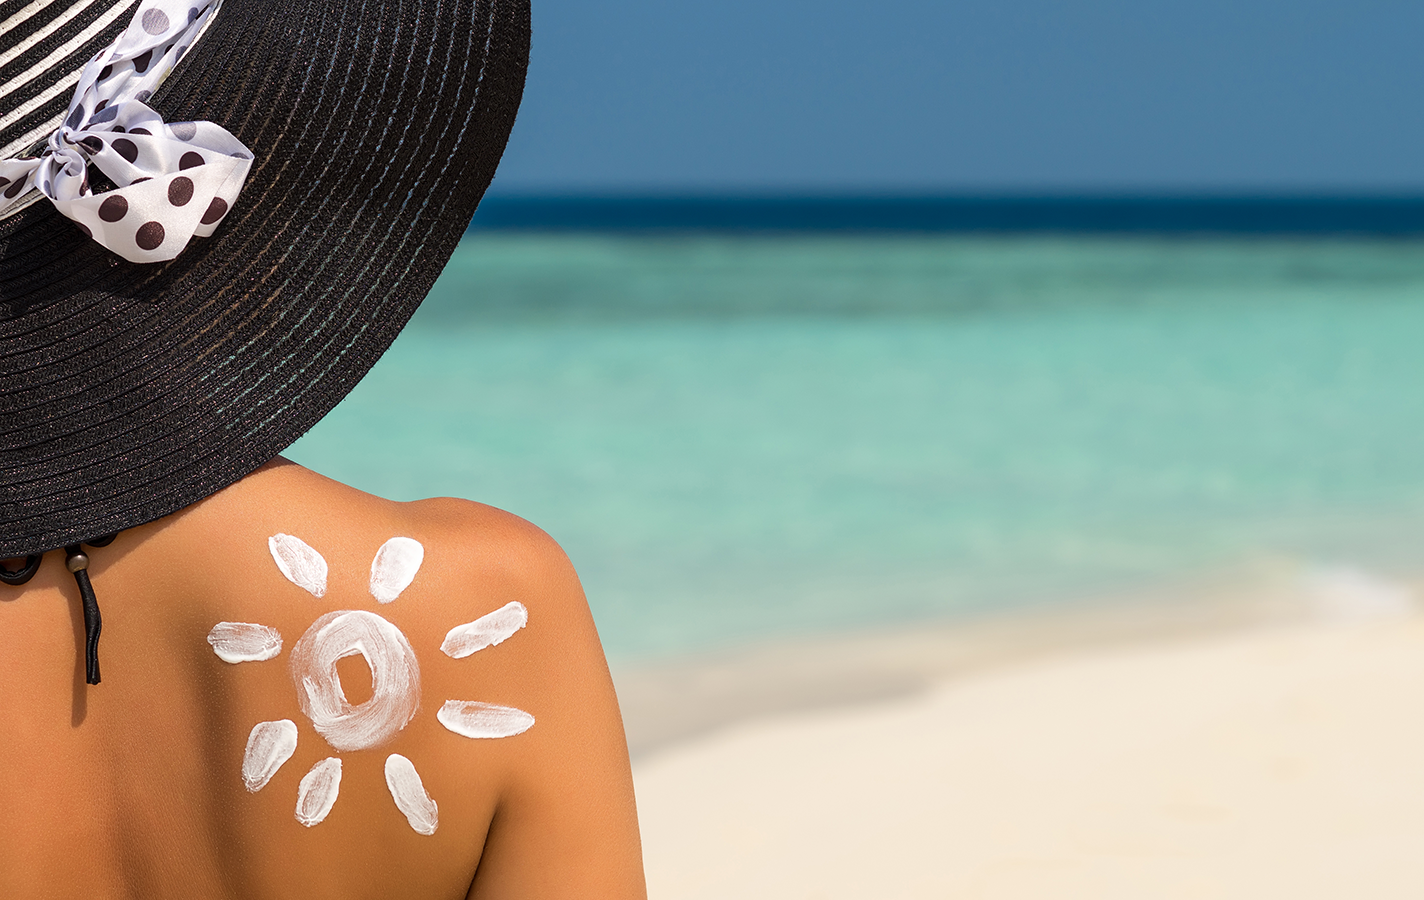 Myths vs. Facts About Sun, Skin & Sunscreen